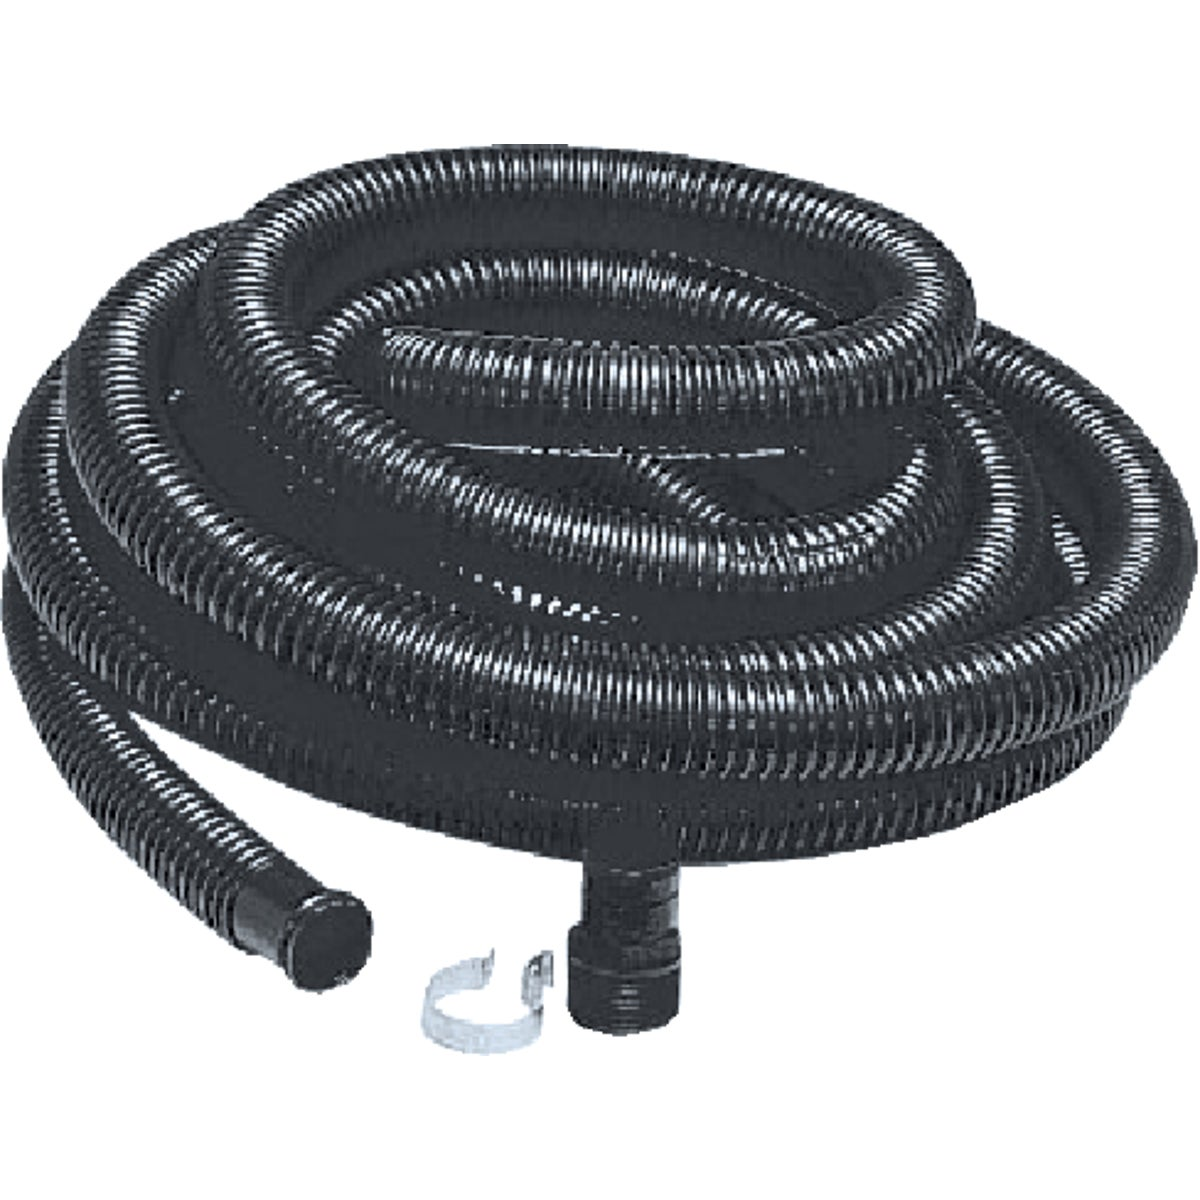 "1-1/4"" HOSE KIT - 419390 by Drainage Industries"